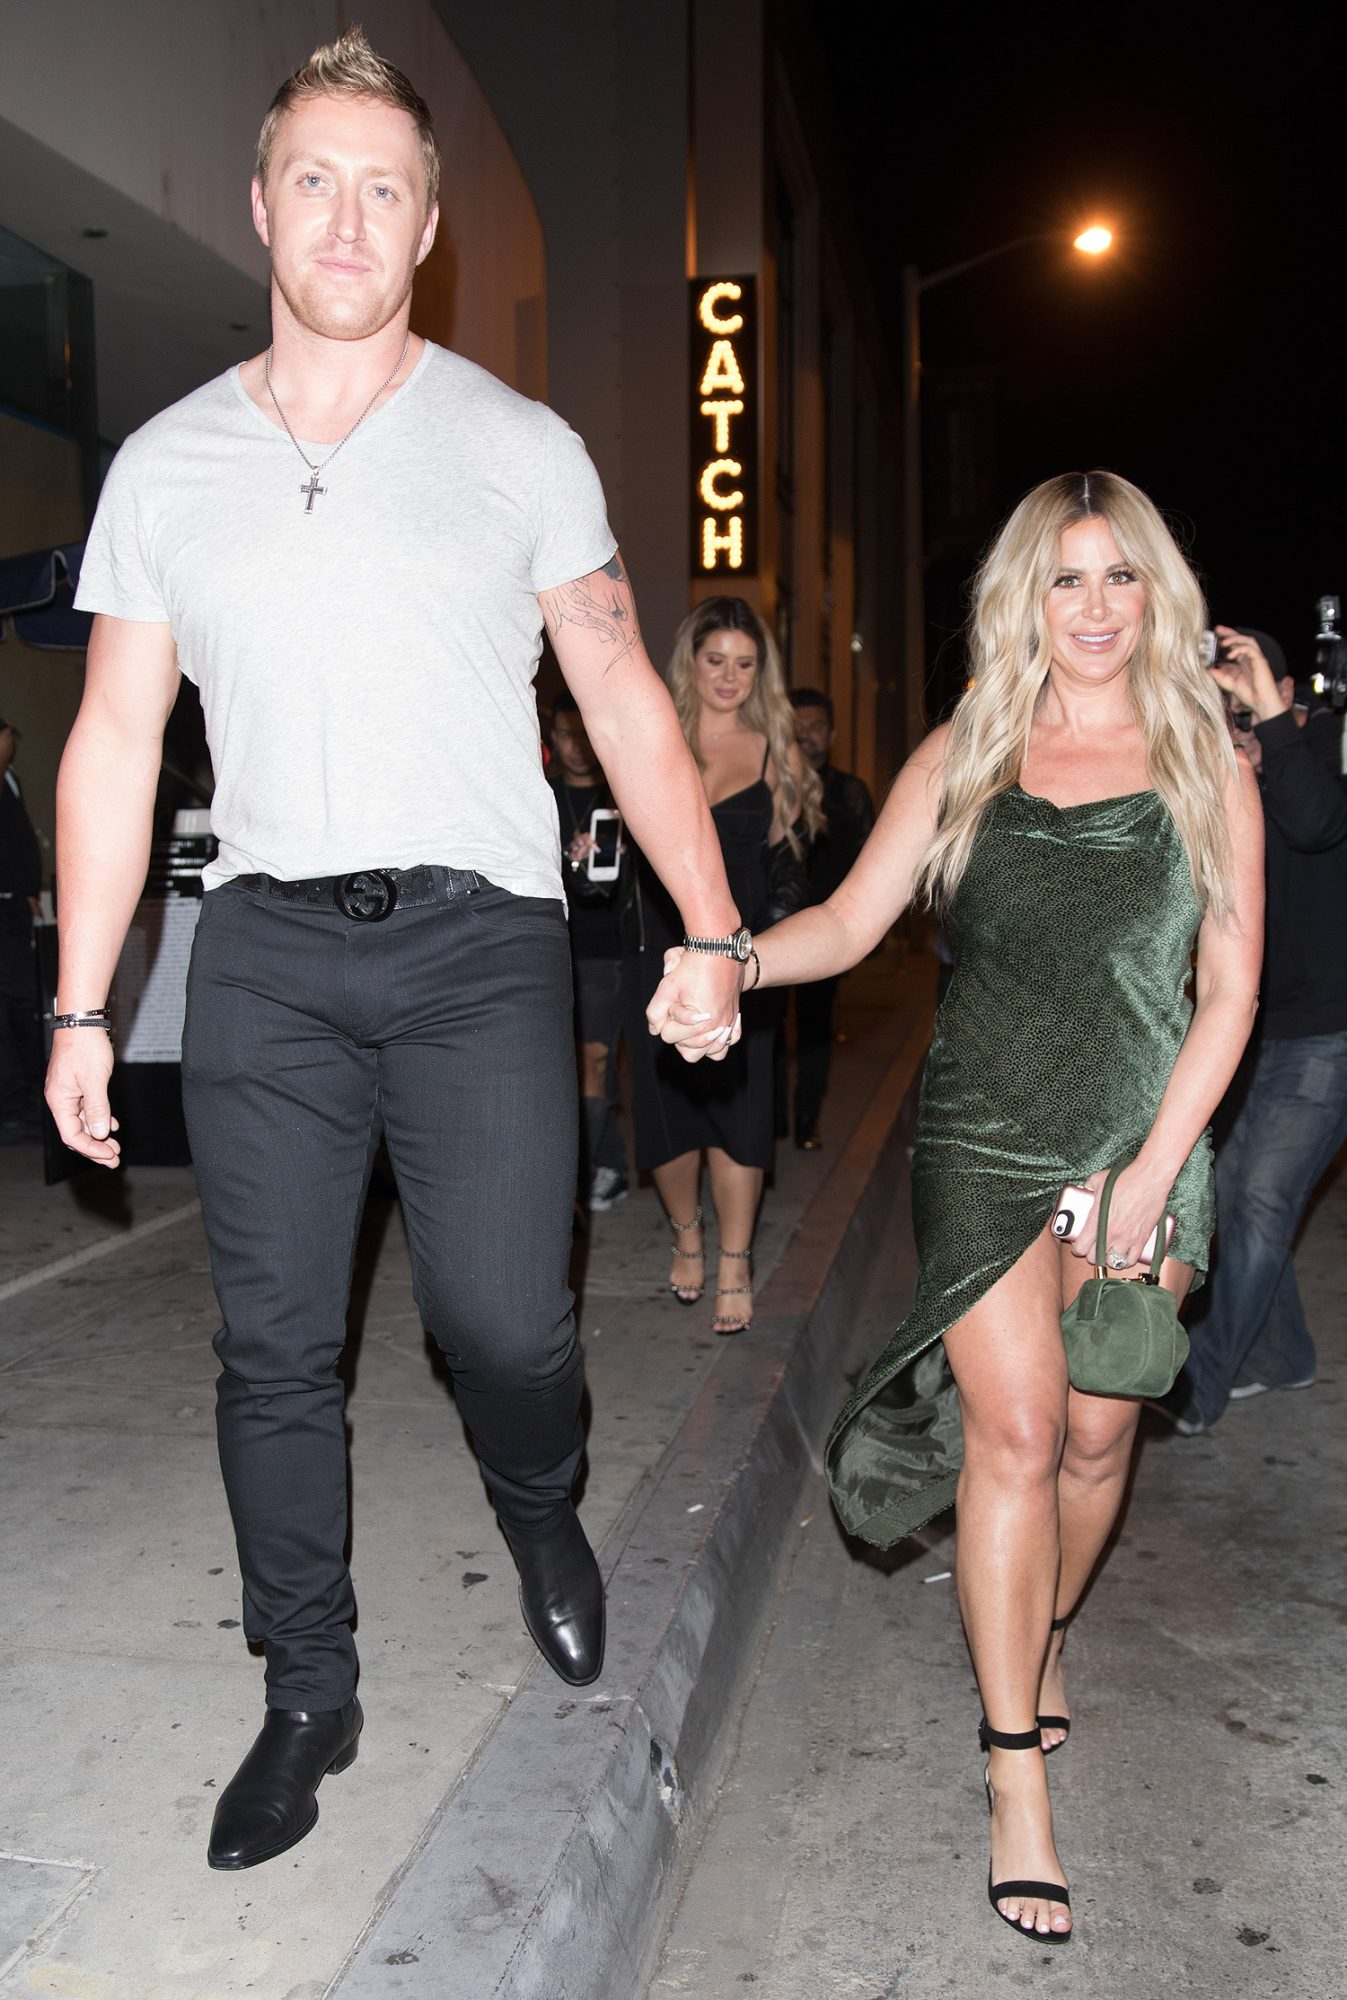 Kim Zolciak and her boyfriend are seen leaving Catch in West Hollywood